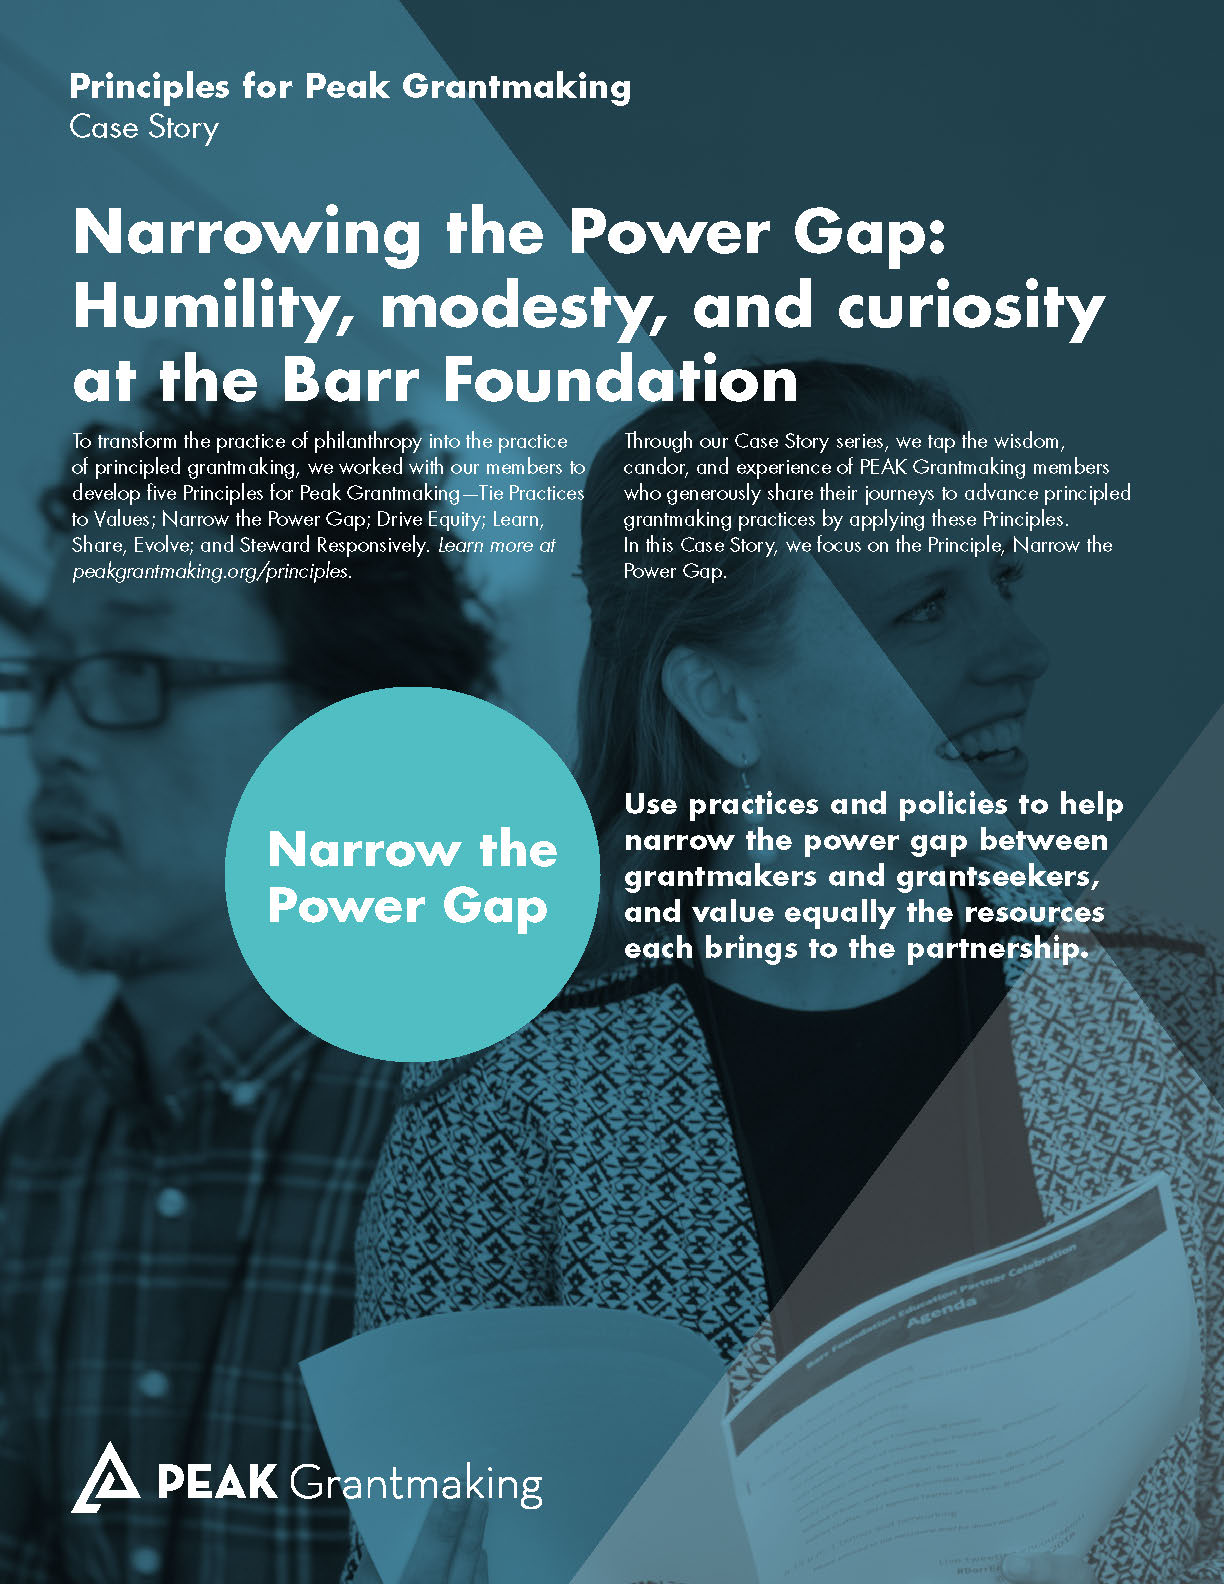 Narrowing the Power Gap case story image